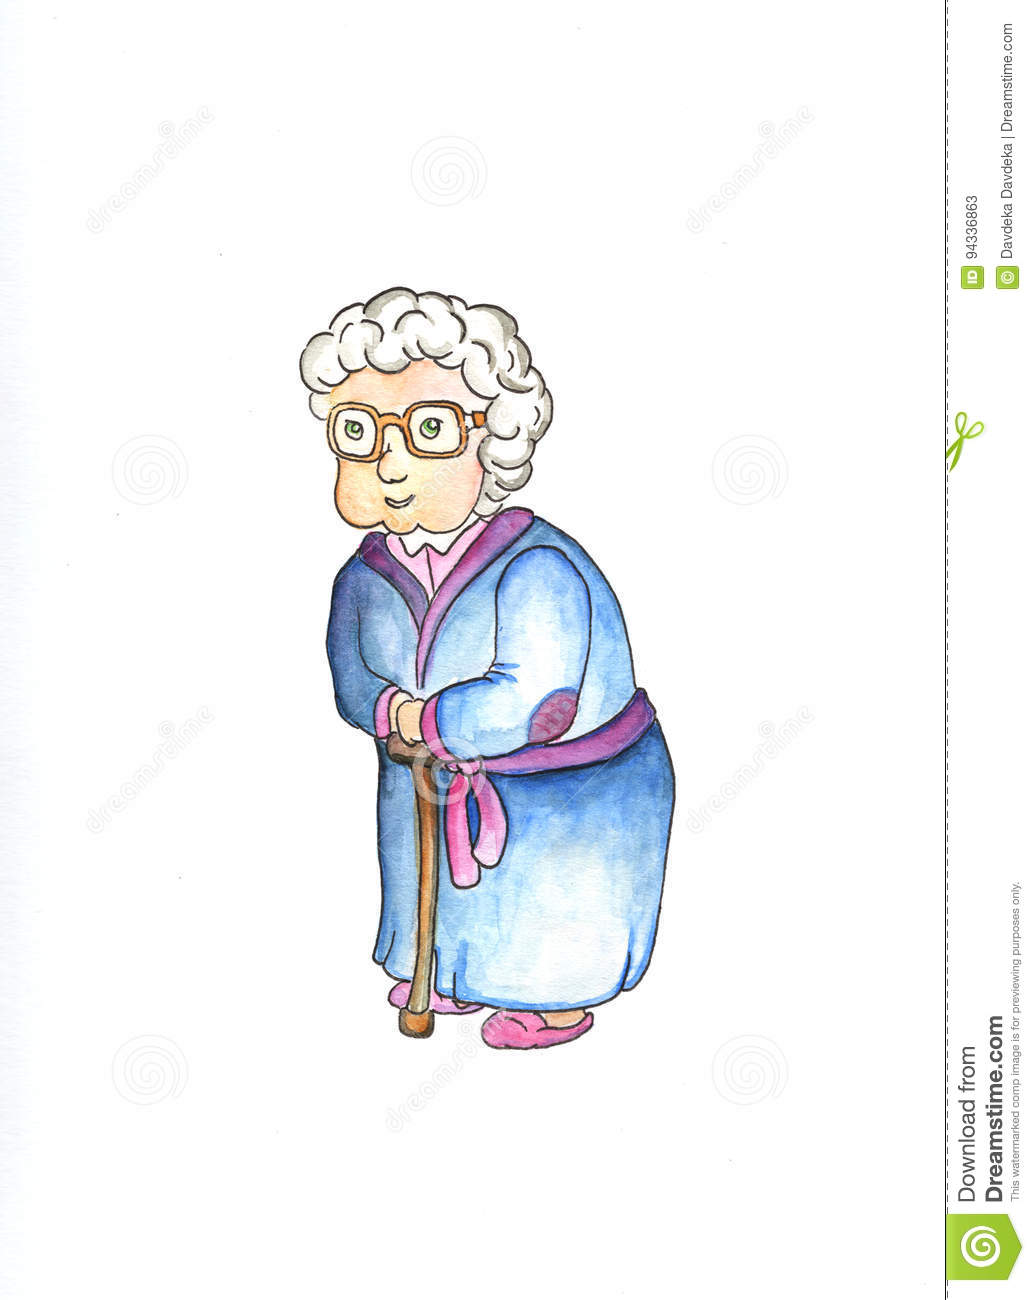 Old Lady In Glasses With Stick By Watercolors. Lovely Old Woman.